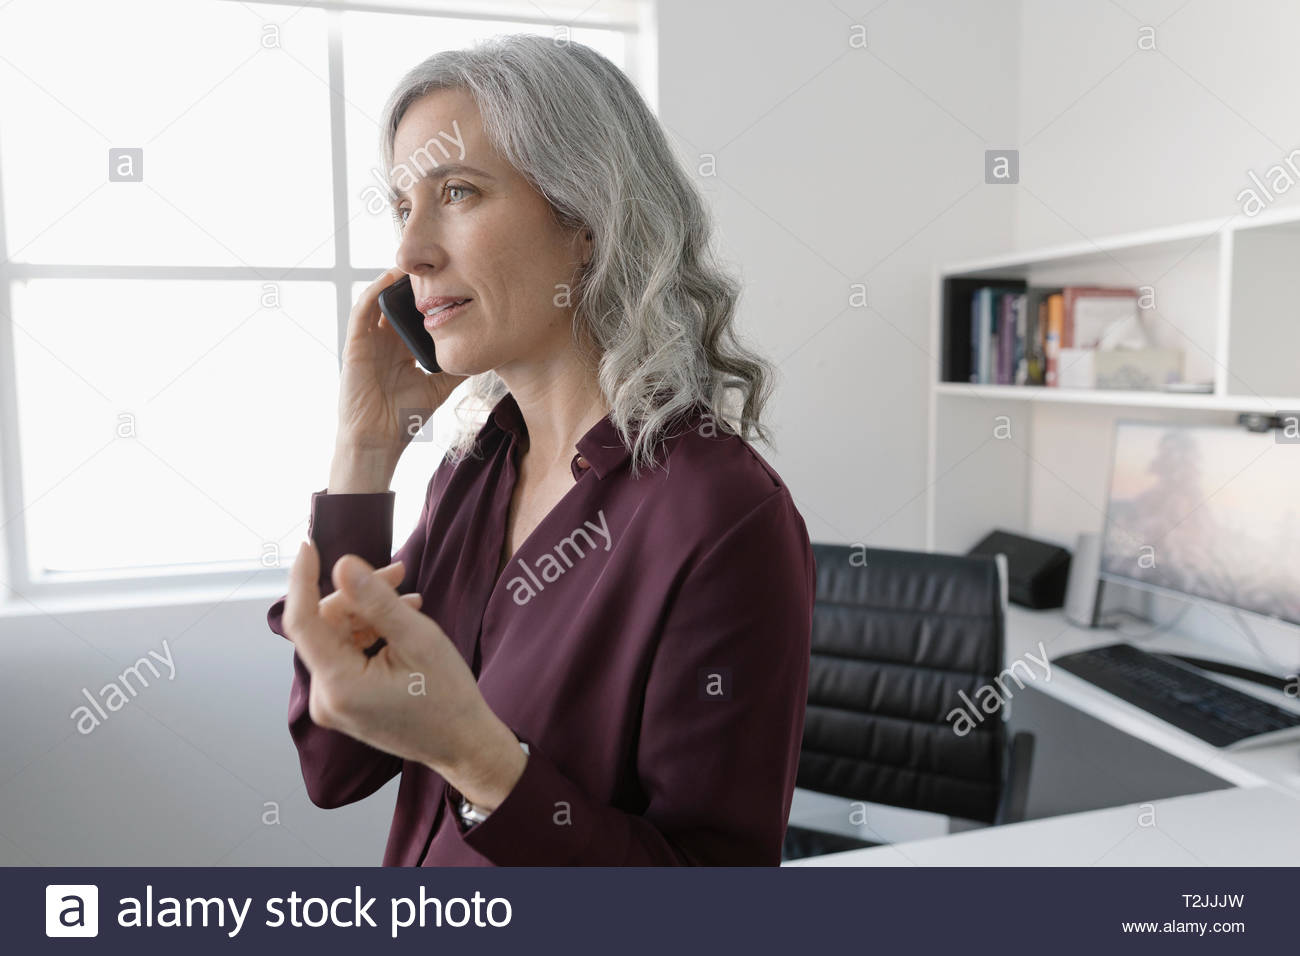 Businesswoman talking on cell phone in office - Stock Image